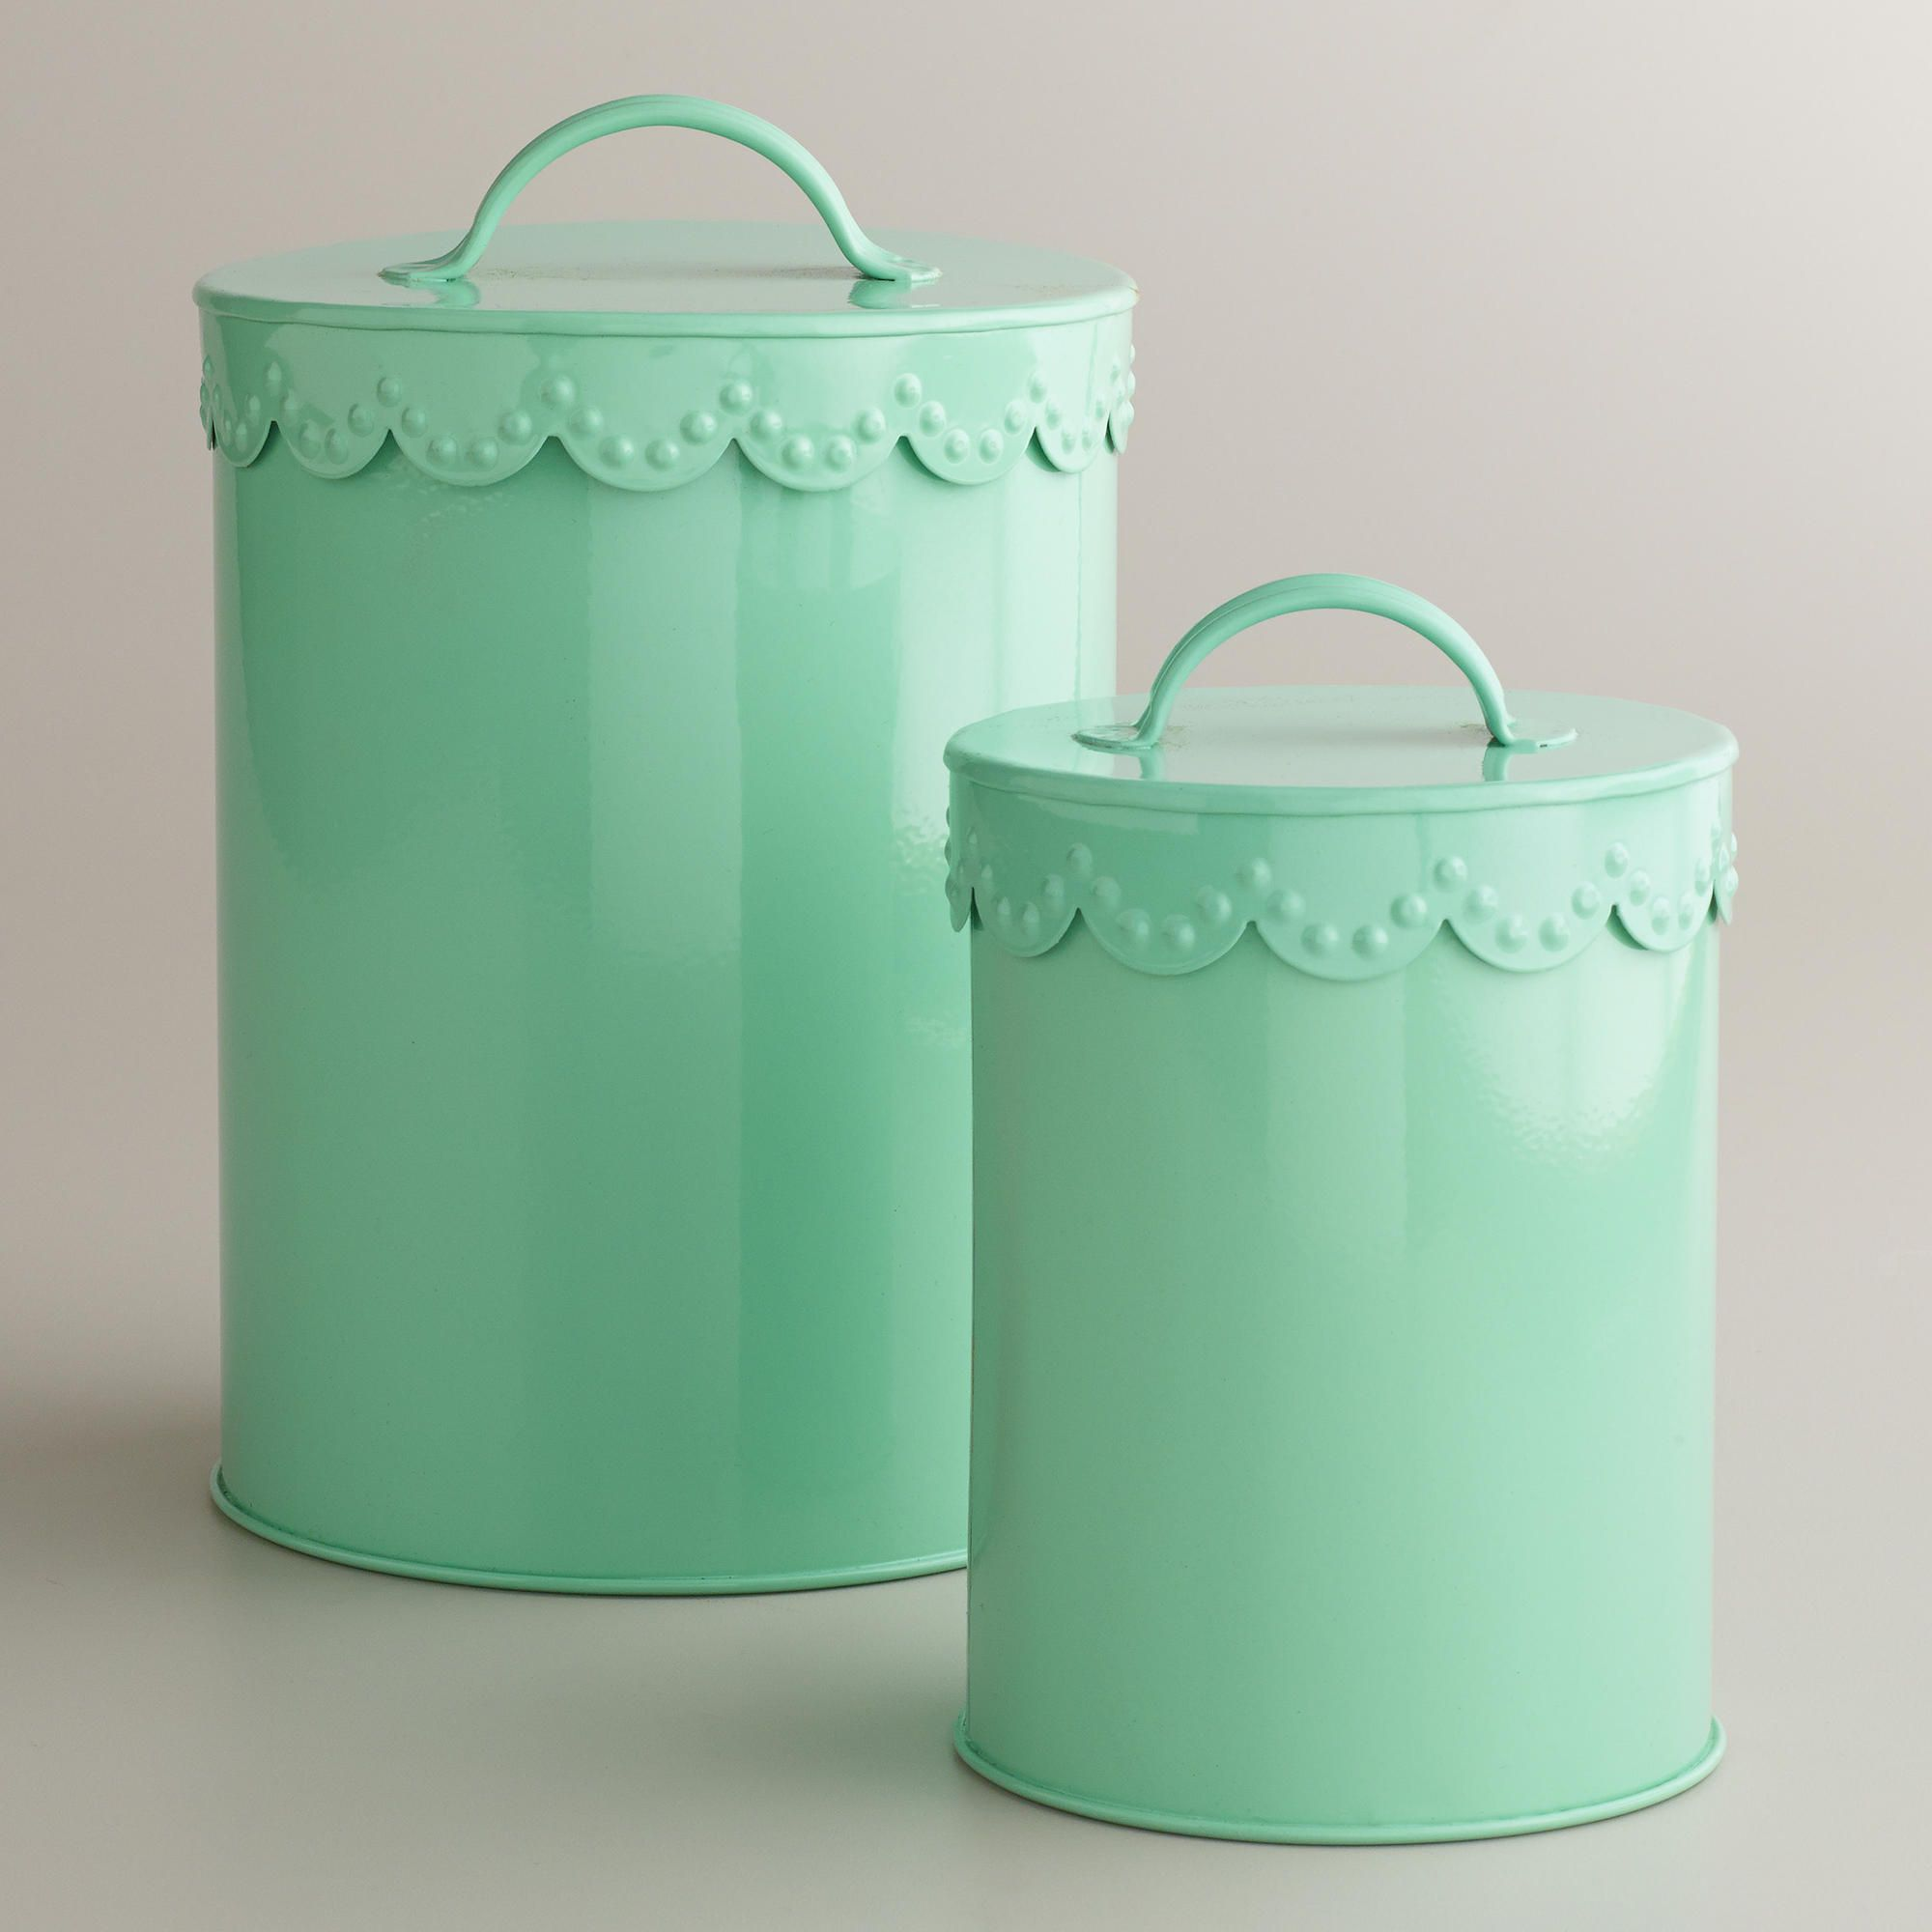 Retro Kitchen Canisters Mint Vintage Scalloped Top Canisters 5 7 World Market